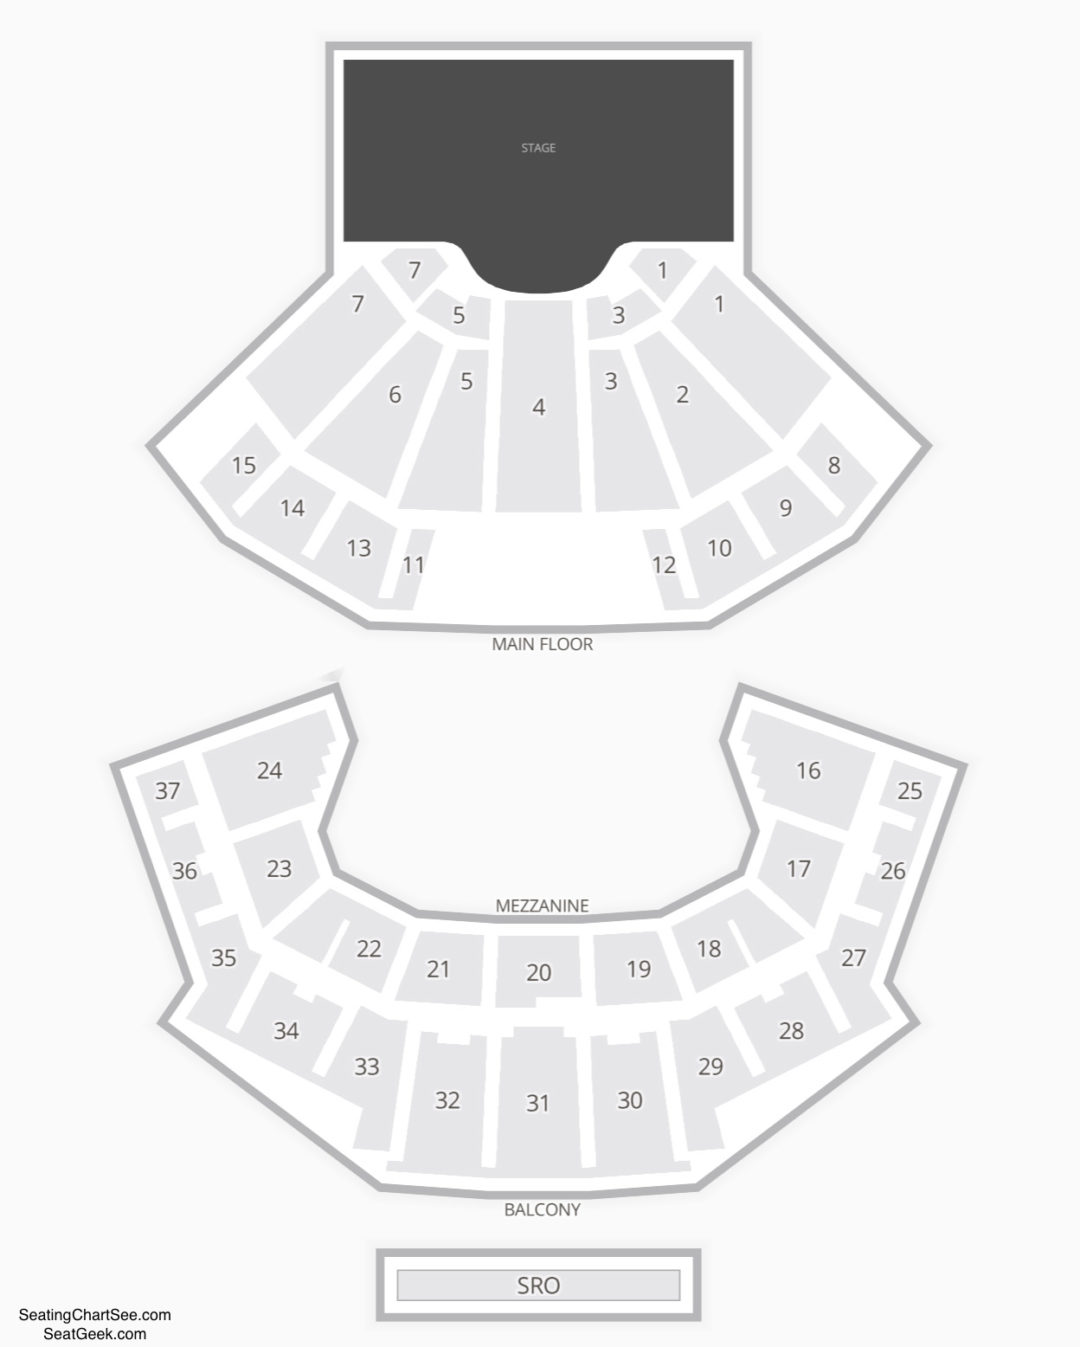 Grand Ole Opry House Seating Chart Concert